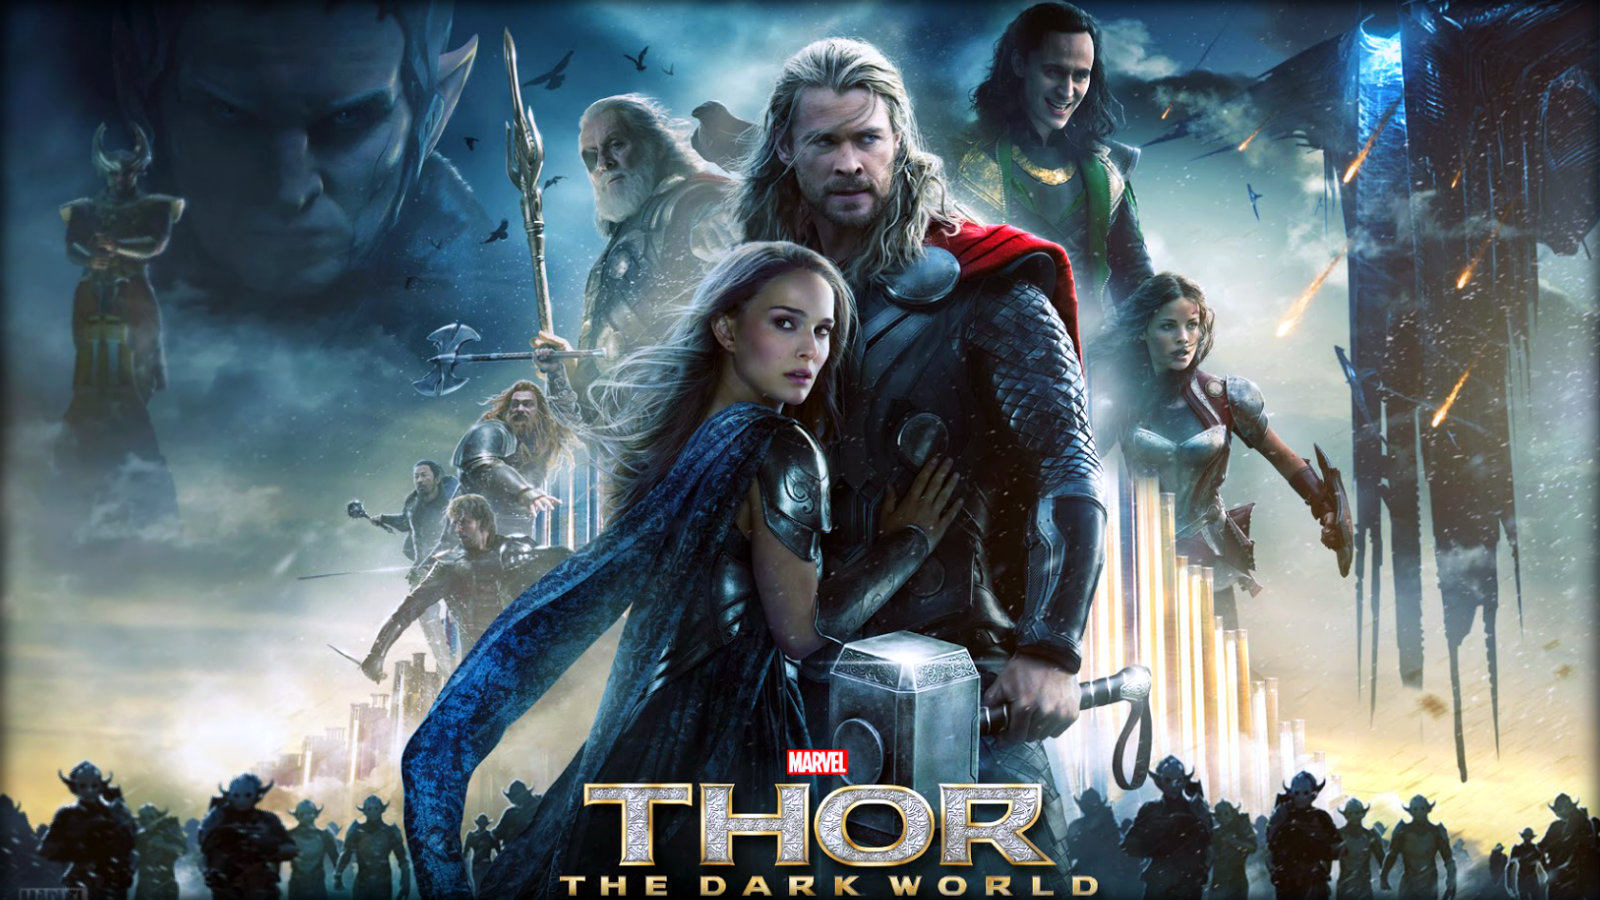 Thor The Dark World - Ankit2World